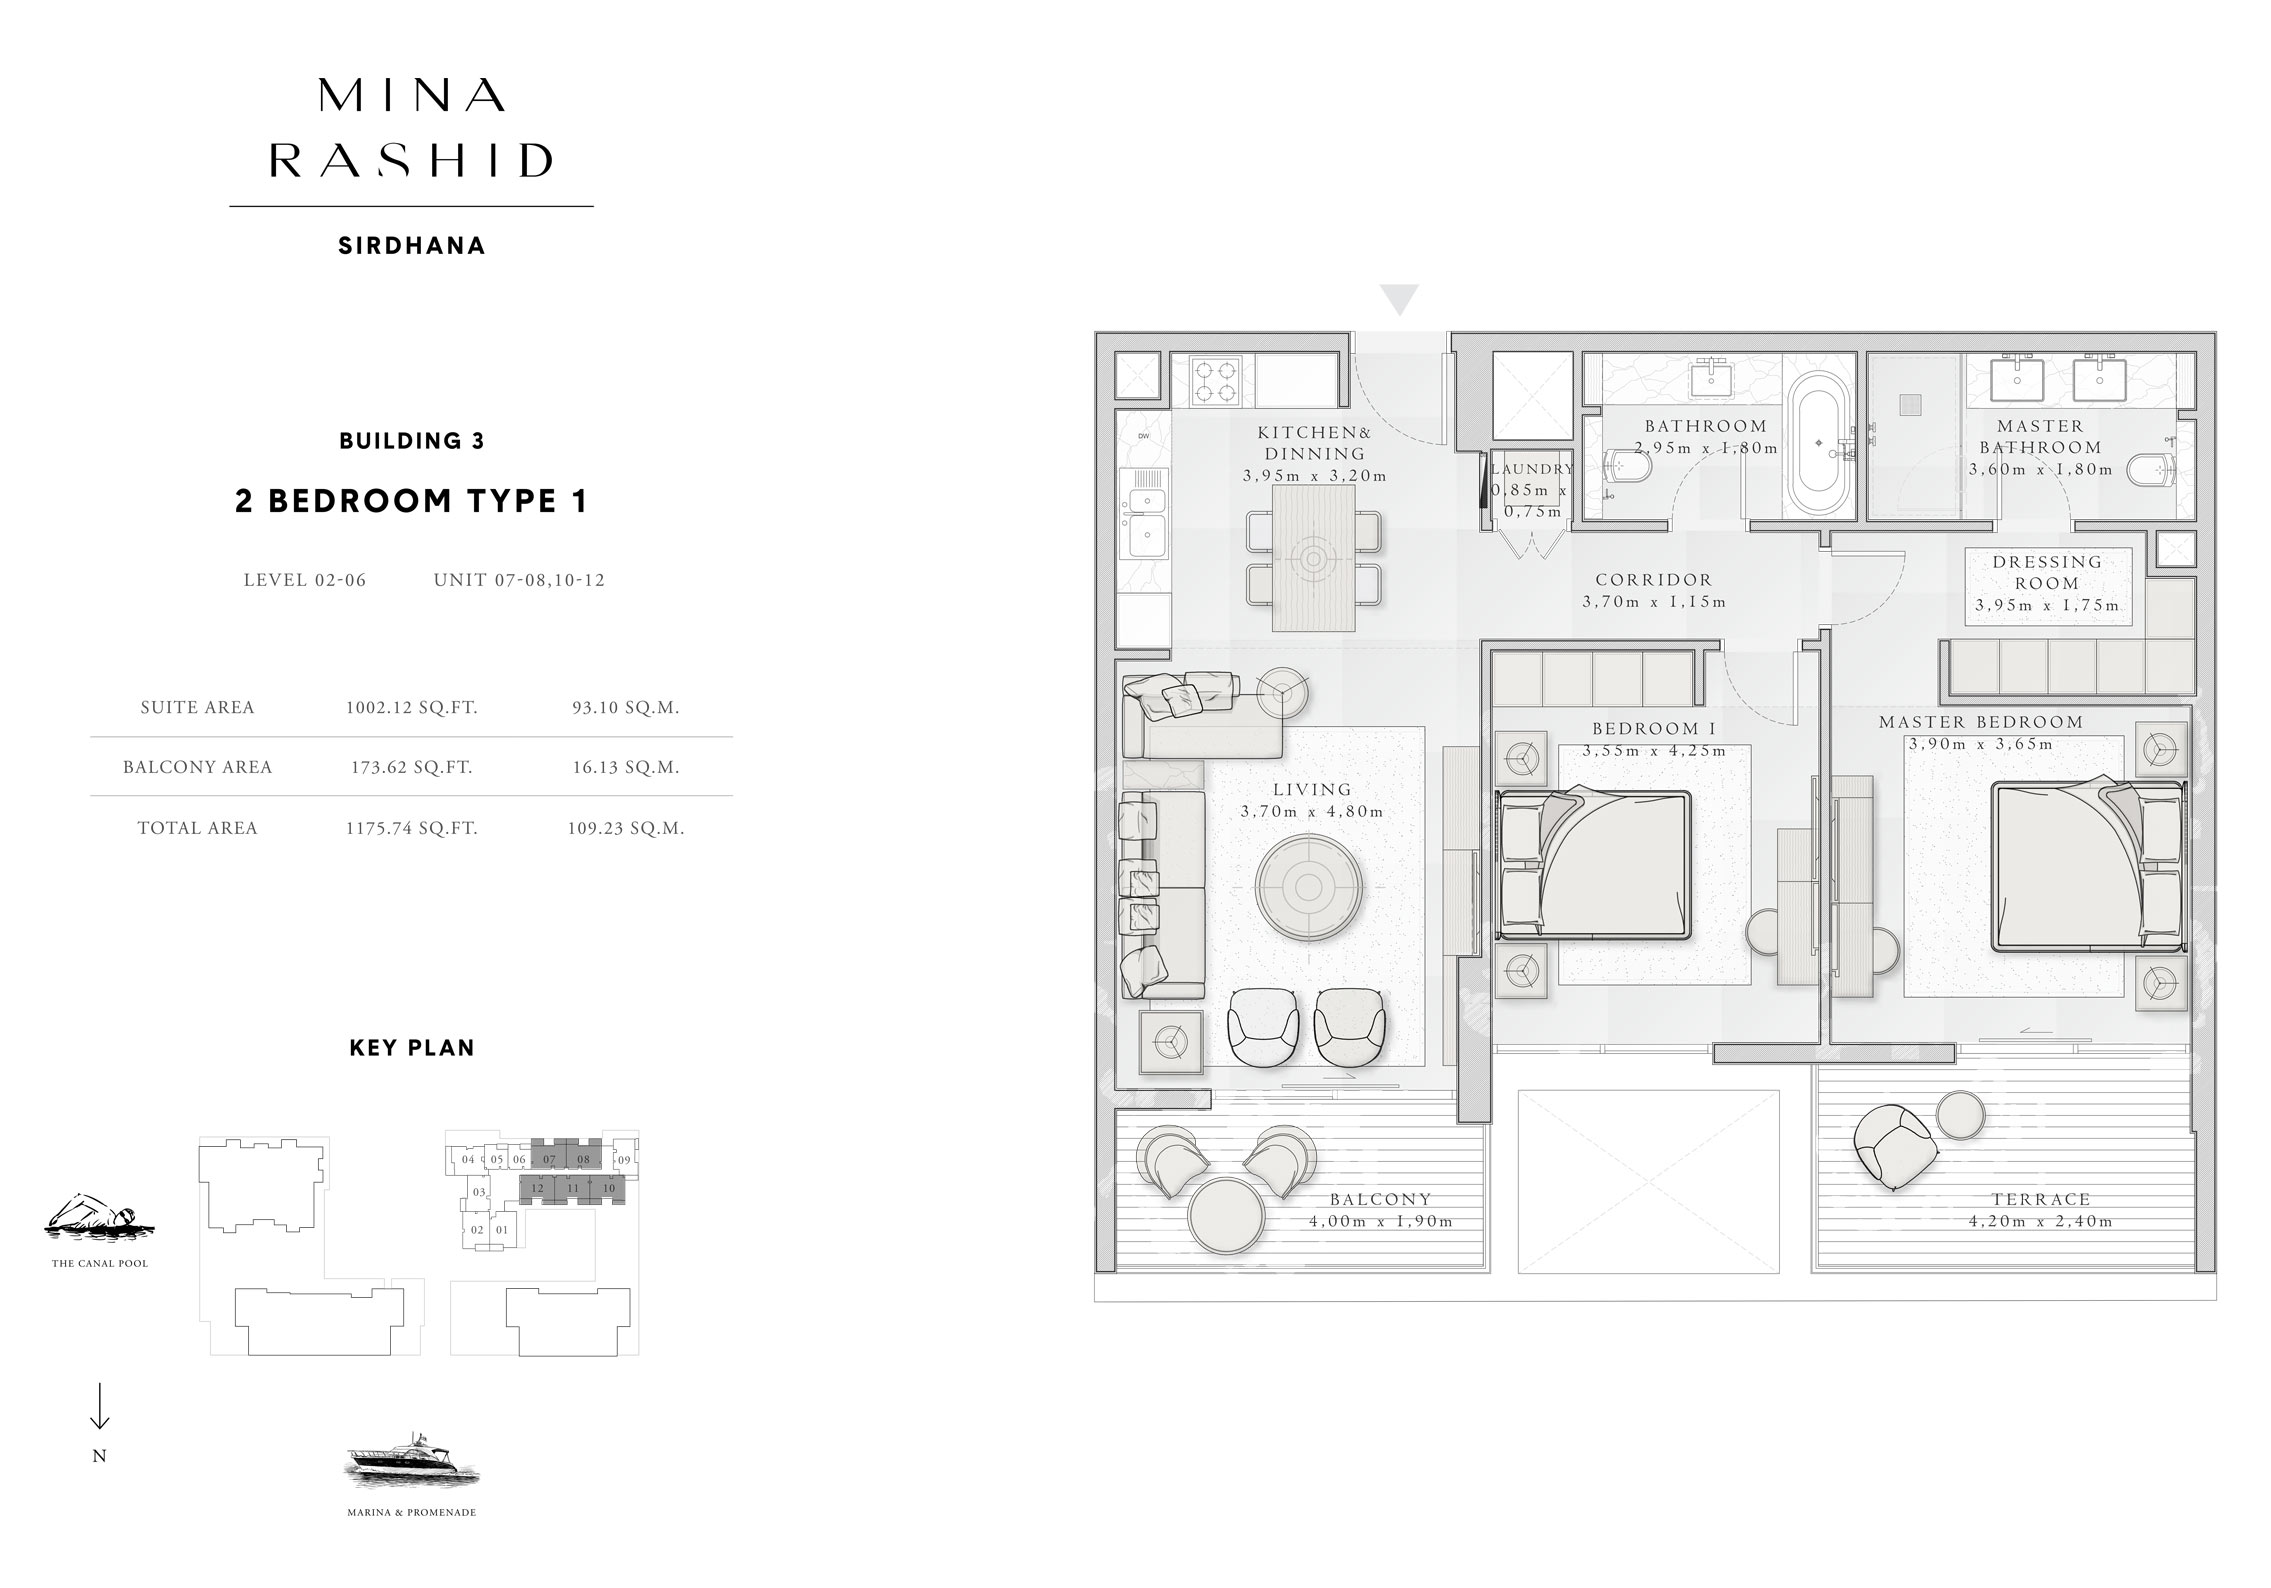 2-Bedroom-Type-1, Building-3, Level-2 to 6, Size-1175-Sq-Ft